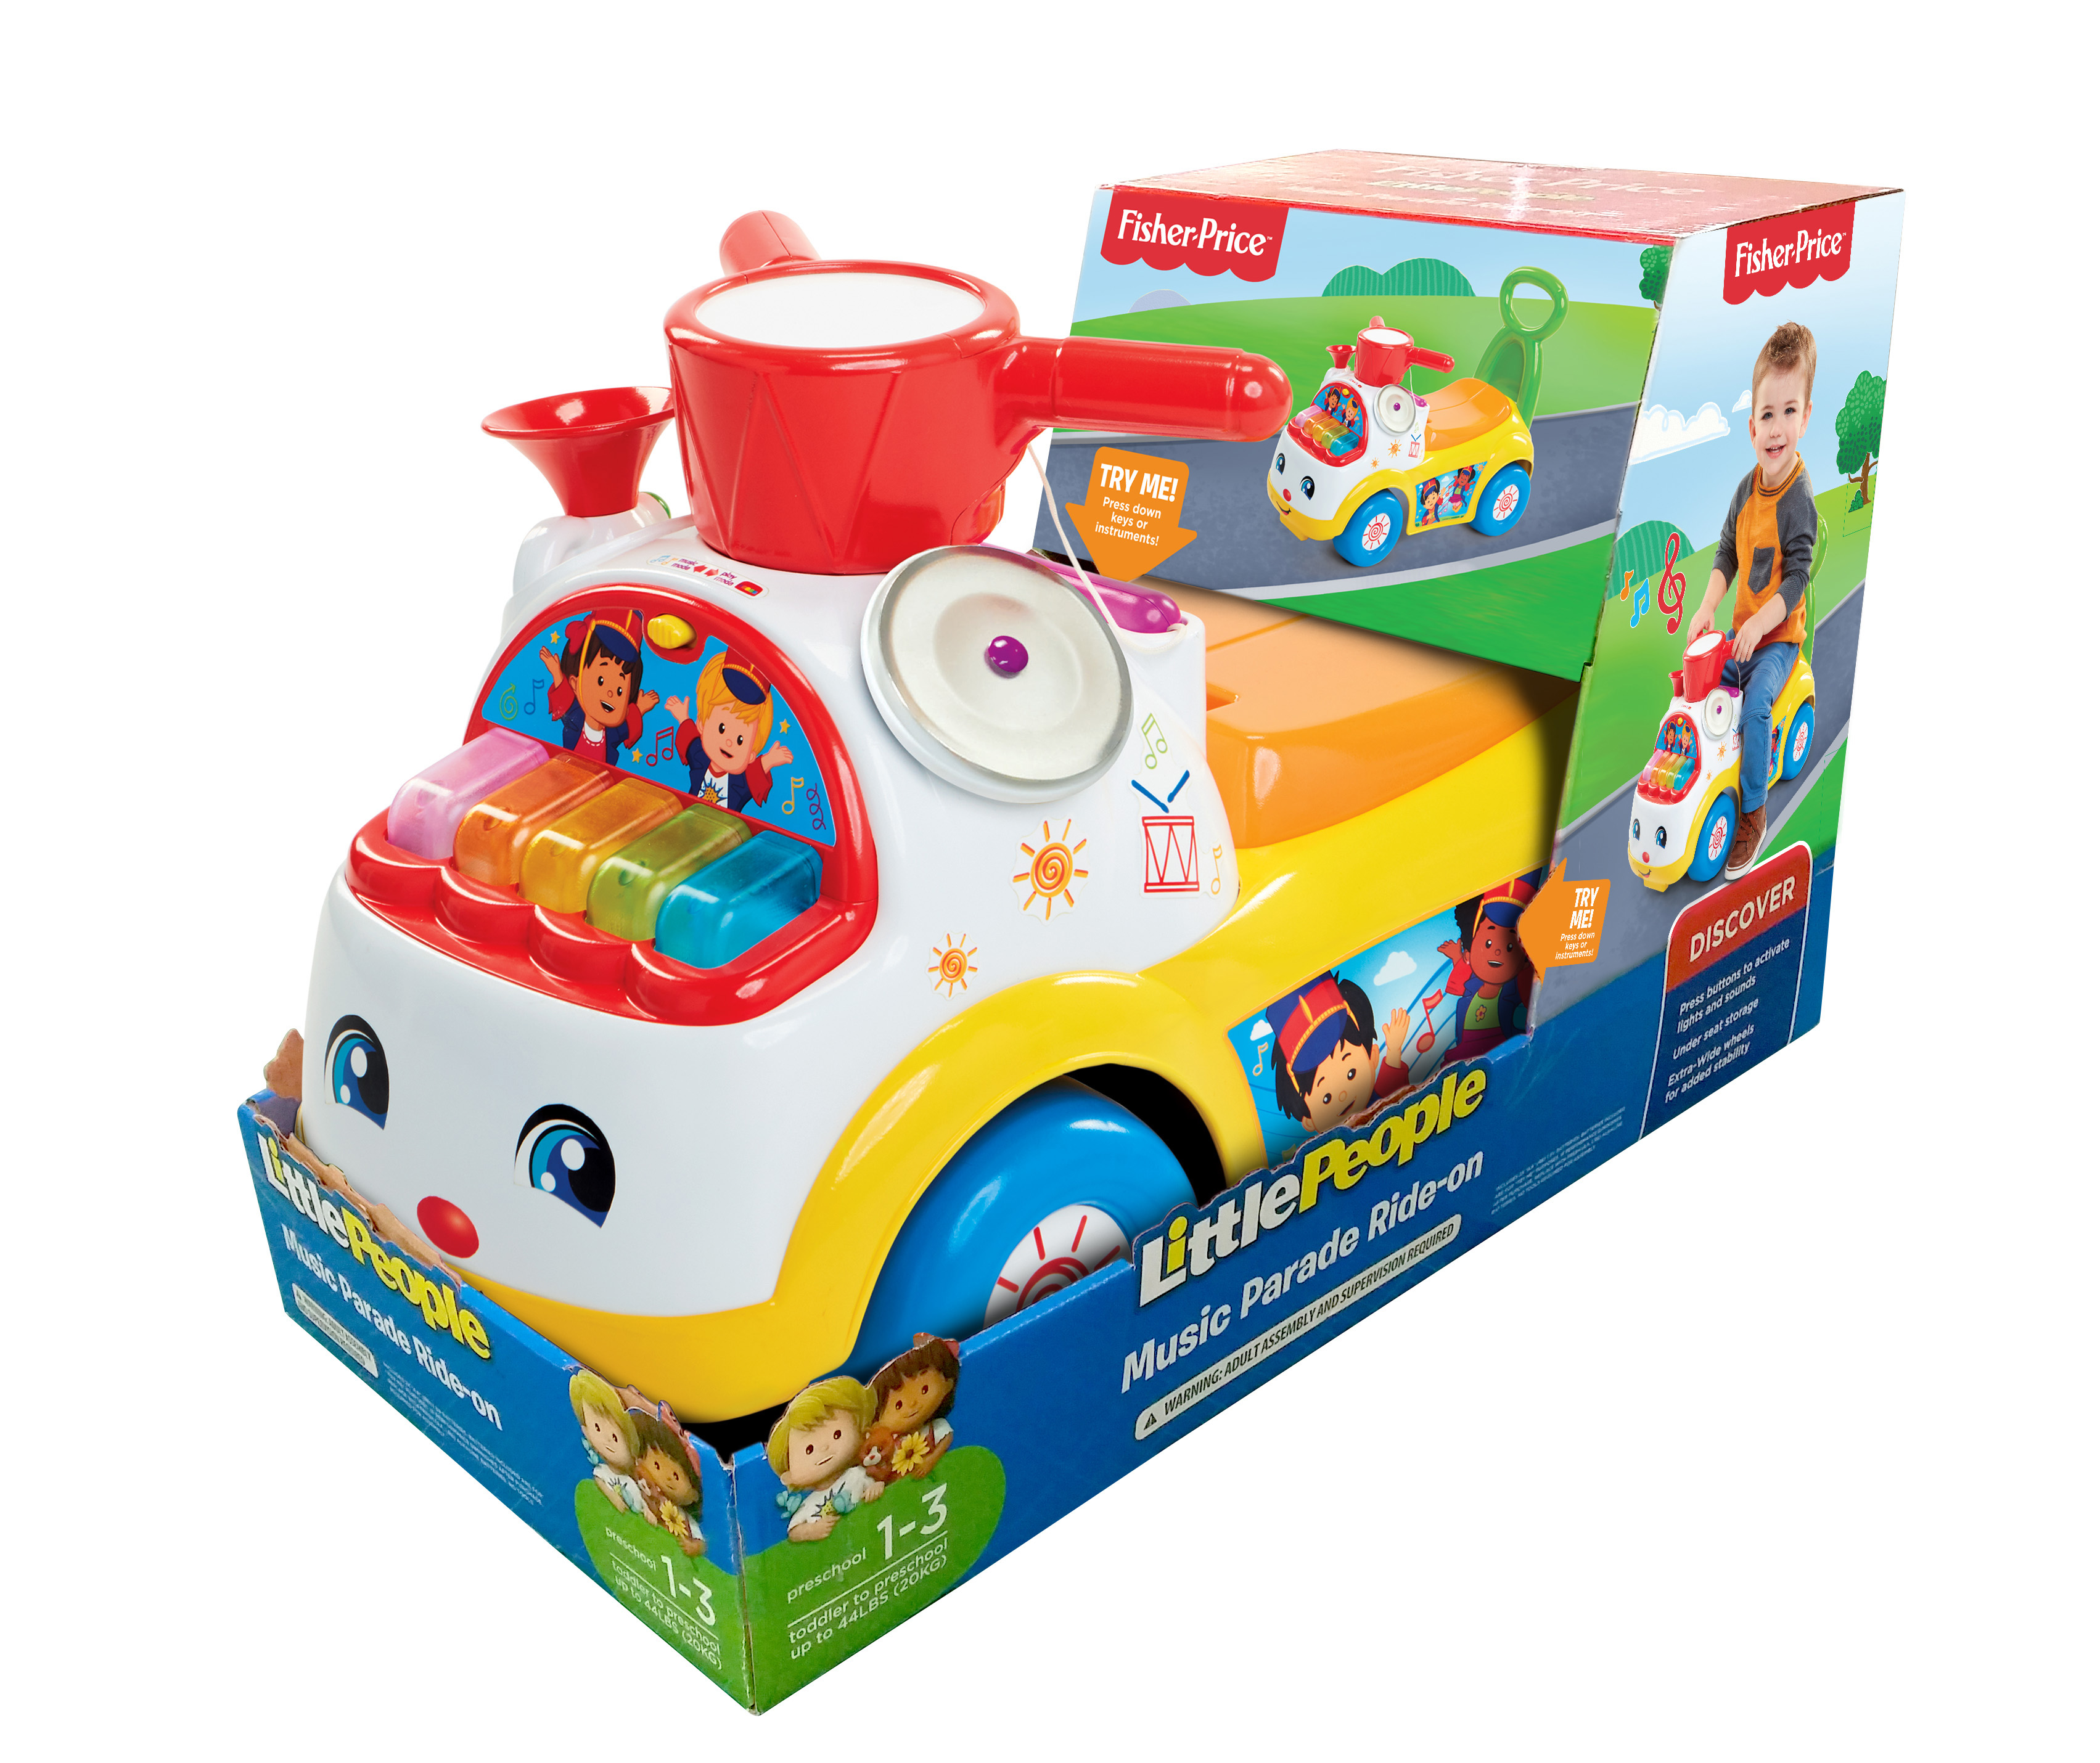 MOOSE MOUNTAIN Fisher-price Ultimate music parade